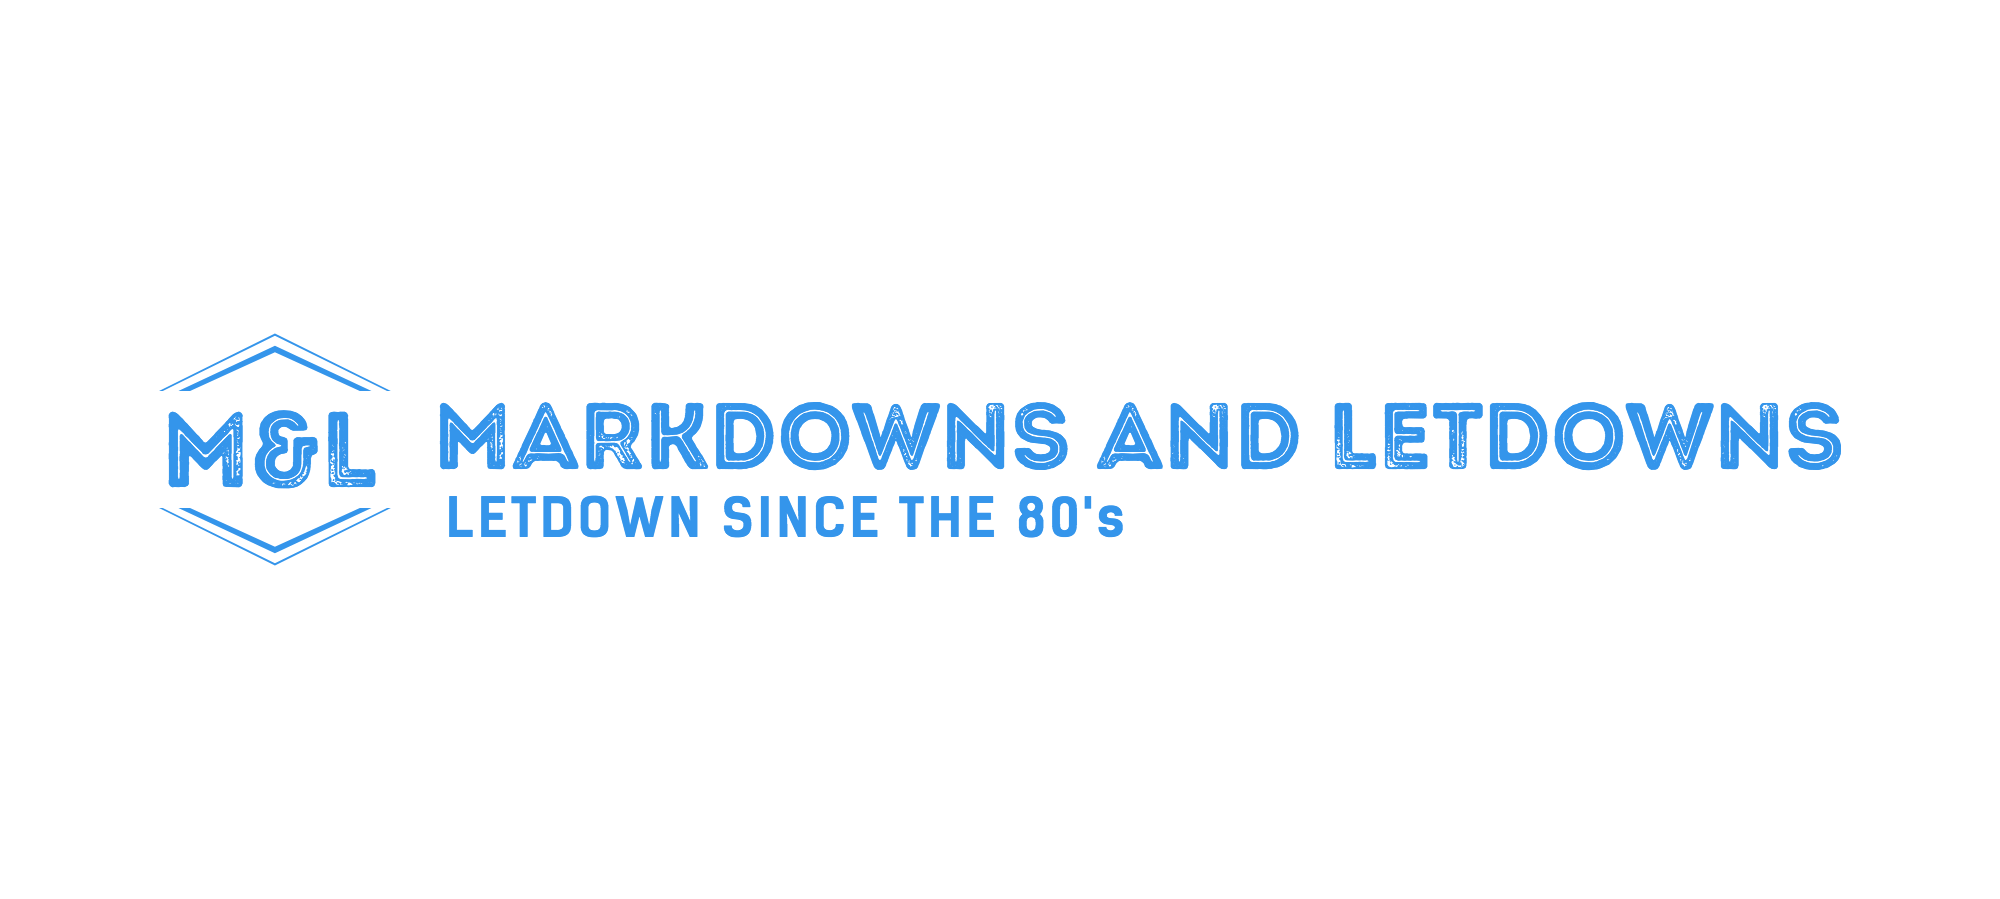 Markdowns and Letdowns